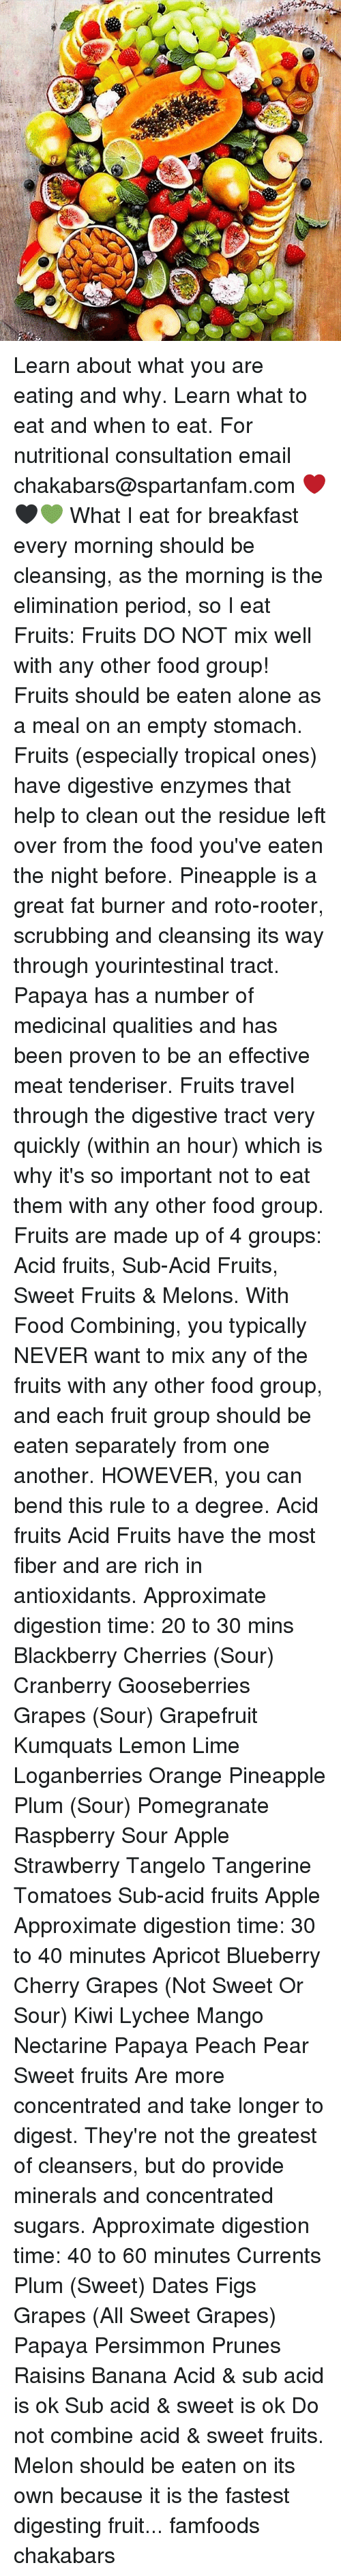 Cherries: CSA. Learn about what you are eating and why. Learn what to eat and when to eat. For nutritional consultation email chakabars@spartanfam.com ❤️🖤💚 What I eat for breakfast every morning should be cleansing, as the morning is the elimination period, so I eat Fruits: Fruits DO NOT mix well with any other food group! Fruits should be eaten alone as a meal on an empty stomach. Fruits (especially tropical ones) have digestive enzymes that help to clean out the residue left over from the food you've eaten the night before. Pineapple is a great fat burner and roto-rooter, scrubbing and cleansing its way through yourintestinal tract. Papaya has a number of medicinal qualities and has been proven to be an effective meat tenderiser. Fruits travel through the digestive tract very quickly (within an hour) which is why it's so important not to eat them with any other food group. Fruits are made up of 4 groups: Acid fruits, Sub-Acid Fruits, Sweet Fruits & Melons. With Food Combining, you typically NEVER want to mix any of the fruits with any other food group, and each fruit group should be eaten separately from one another. HOWEVER, you can bend this rule to a degree. Acid fruits Acid Fruits have the most fiber and are rich in antioxidants. Approximate digestion time: 20 to 30 mins Blackberry Cherries (Sour) Cranberry Gooseberries Grapes (Sour) Grapefruit Kumquats Lemon Lime Loganberries Orange Pineapple Plum (Sour) Pomegranate Raspberry Sour Apple Strawberry Tangelo Tangerine Tomatoes Sub-acid fruits Apple Approximate digestion time: 30 to 40 minutes Apricot Blueberry Cherry Grapes (Not Sweet Or Sour) Kiwi Lychee Mango Nectarine Papaya Peach Pear Sweet fruits Are more concentrated and take longer to digest. They're not the greatest of cleansers, but do provide minerals and concentrated sugars. Approximate digestion time: 40 to 60 minutes Currents Plum (Sweet) Dates Figs Grapes (All Sweet Grapes) Papaya Persimmon Prunes Raisins Banana Acid & sub acid is ok Sub acid & swe